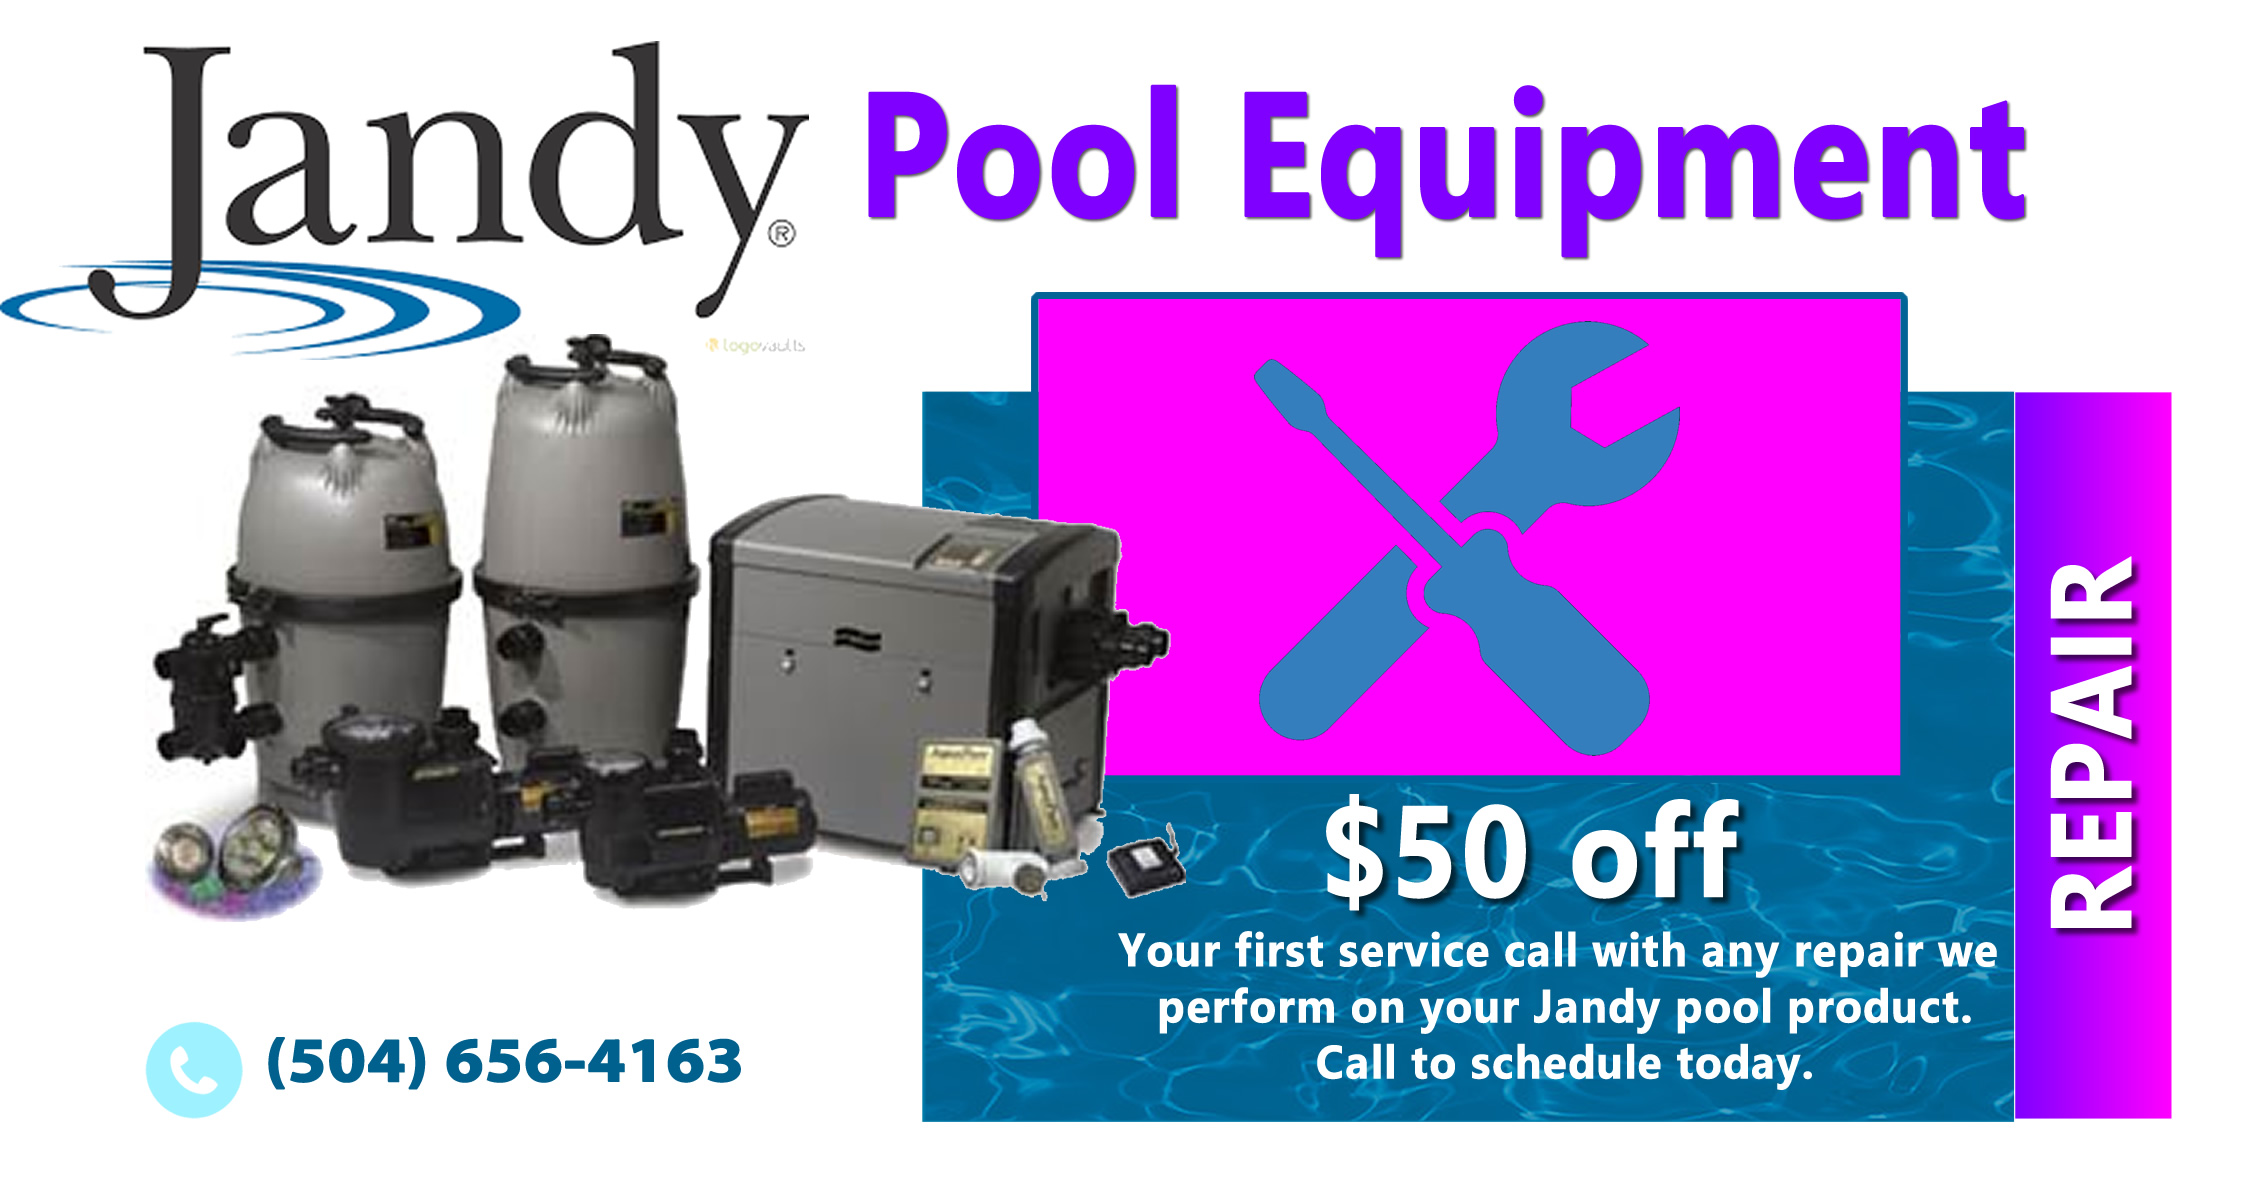 Not Only Do We And Install Brand New Jandy Products But Our Technicians Are Ready To Diagnose Repair Any Piece Of Pool Equipment You Own